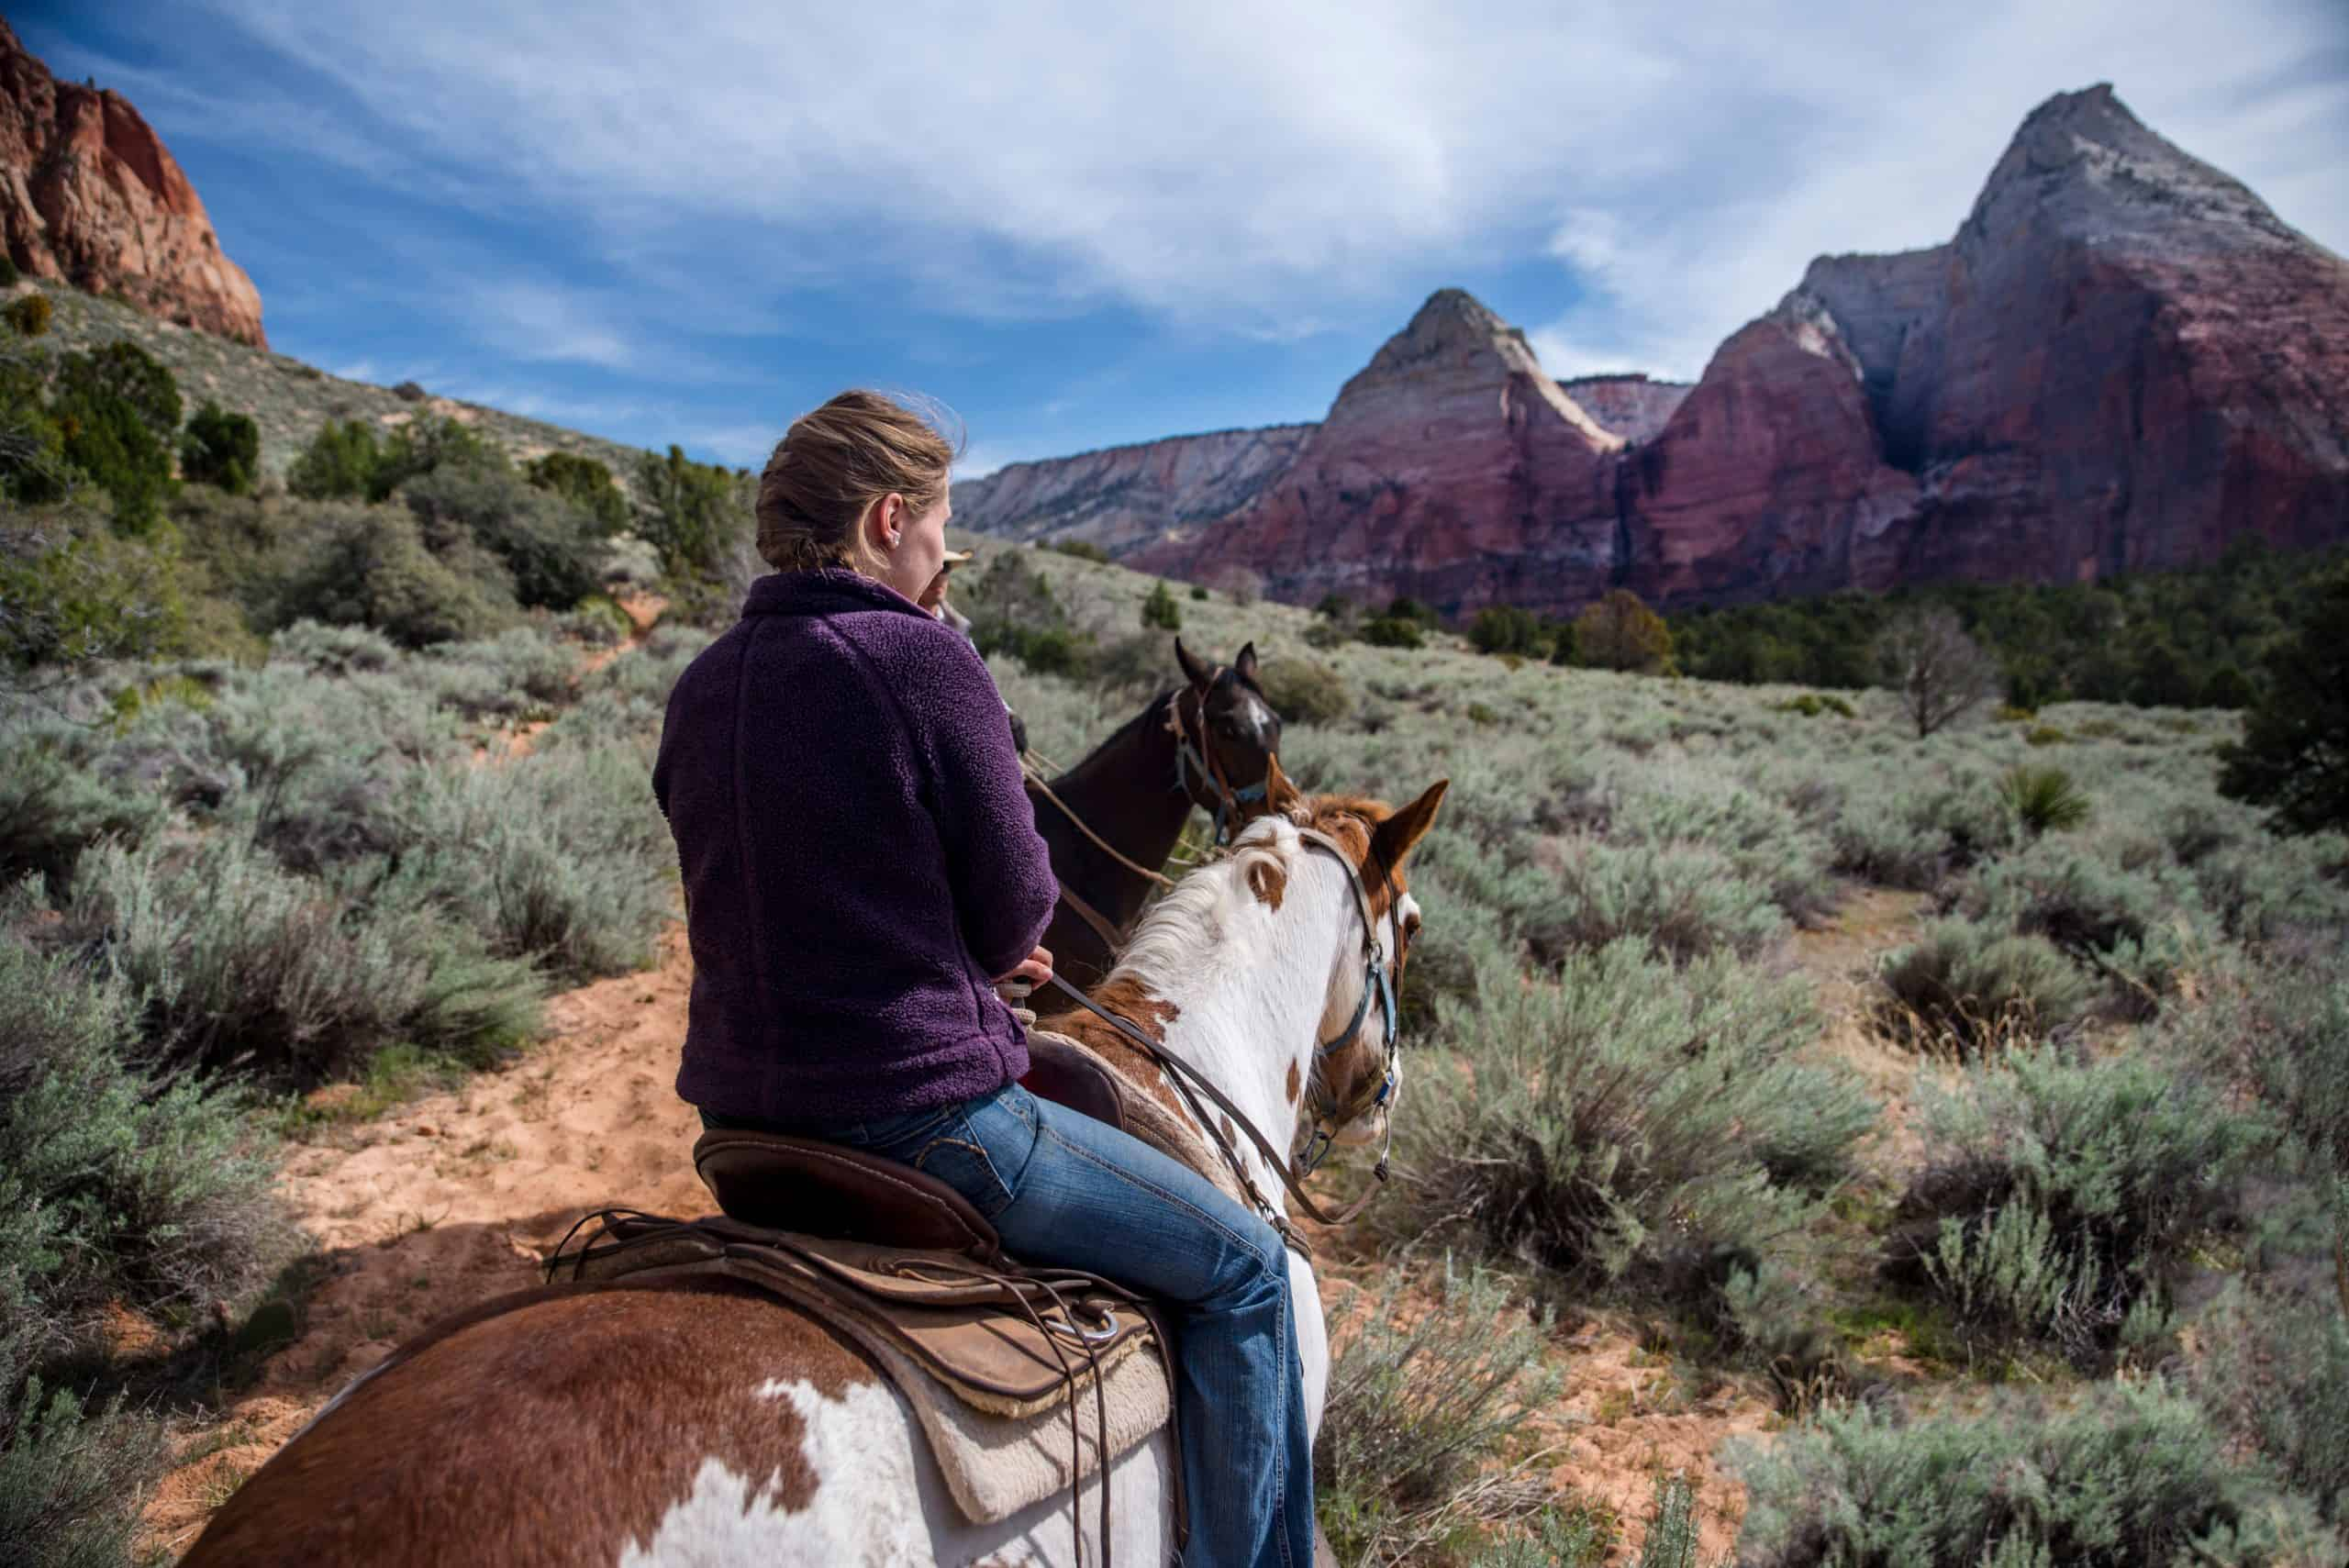 A woman rides on a painted horse through Zion Canyon in Zion National Park, Utah.